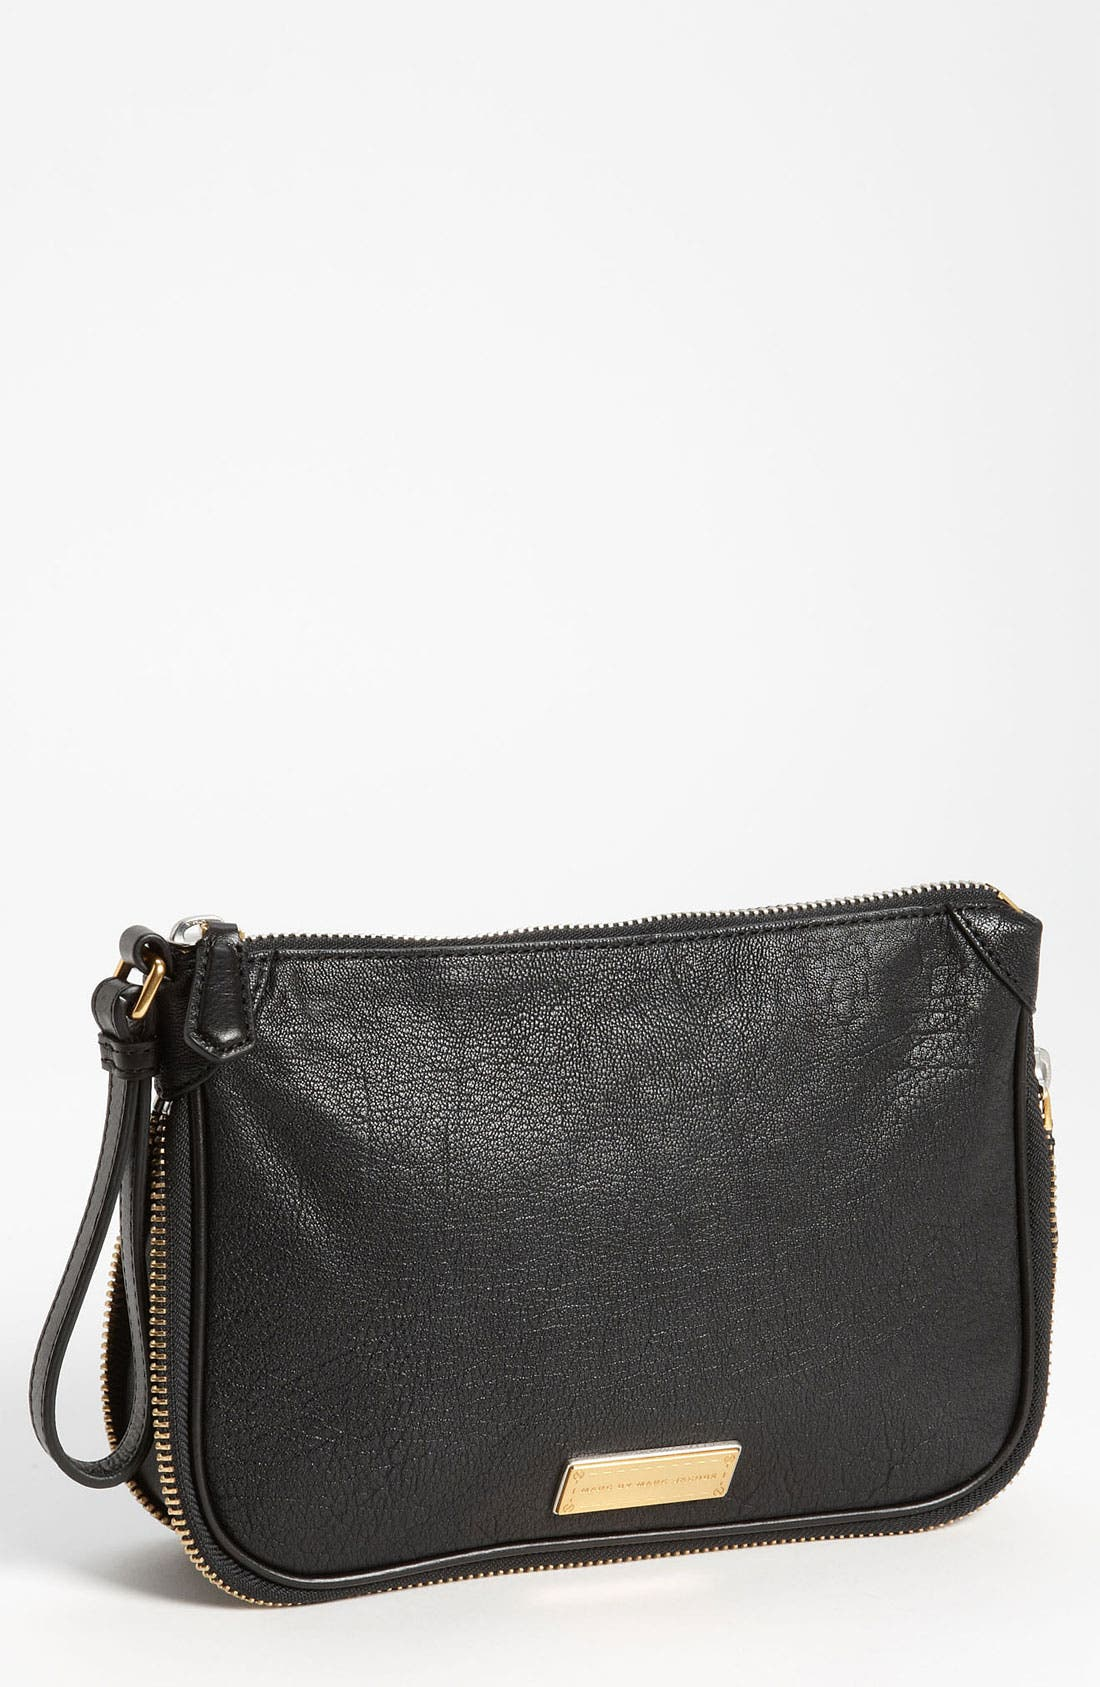 Main Image - MARC BY MARC JACOBS 'Washed Up' Zip Clutch